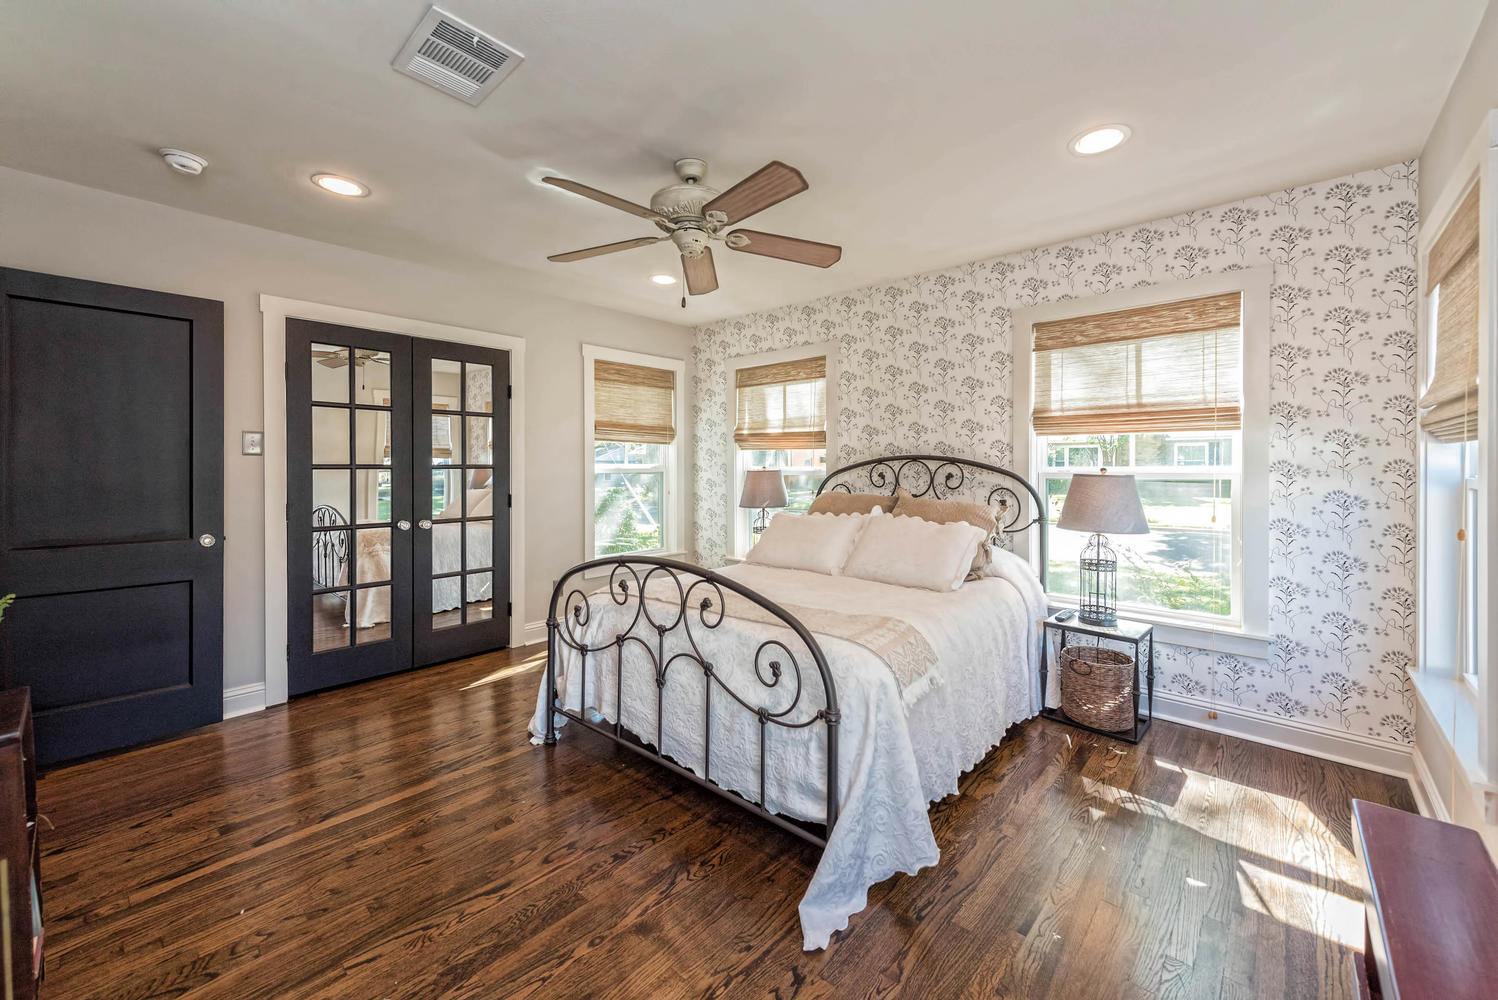 Pretty Patterned Bedroom with floral wallpaper and metal bed frame